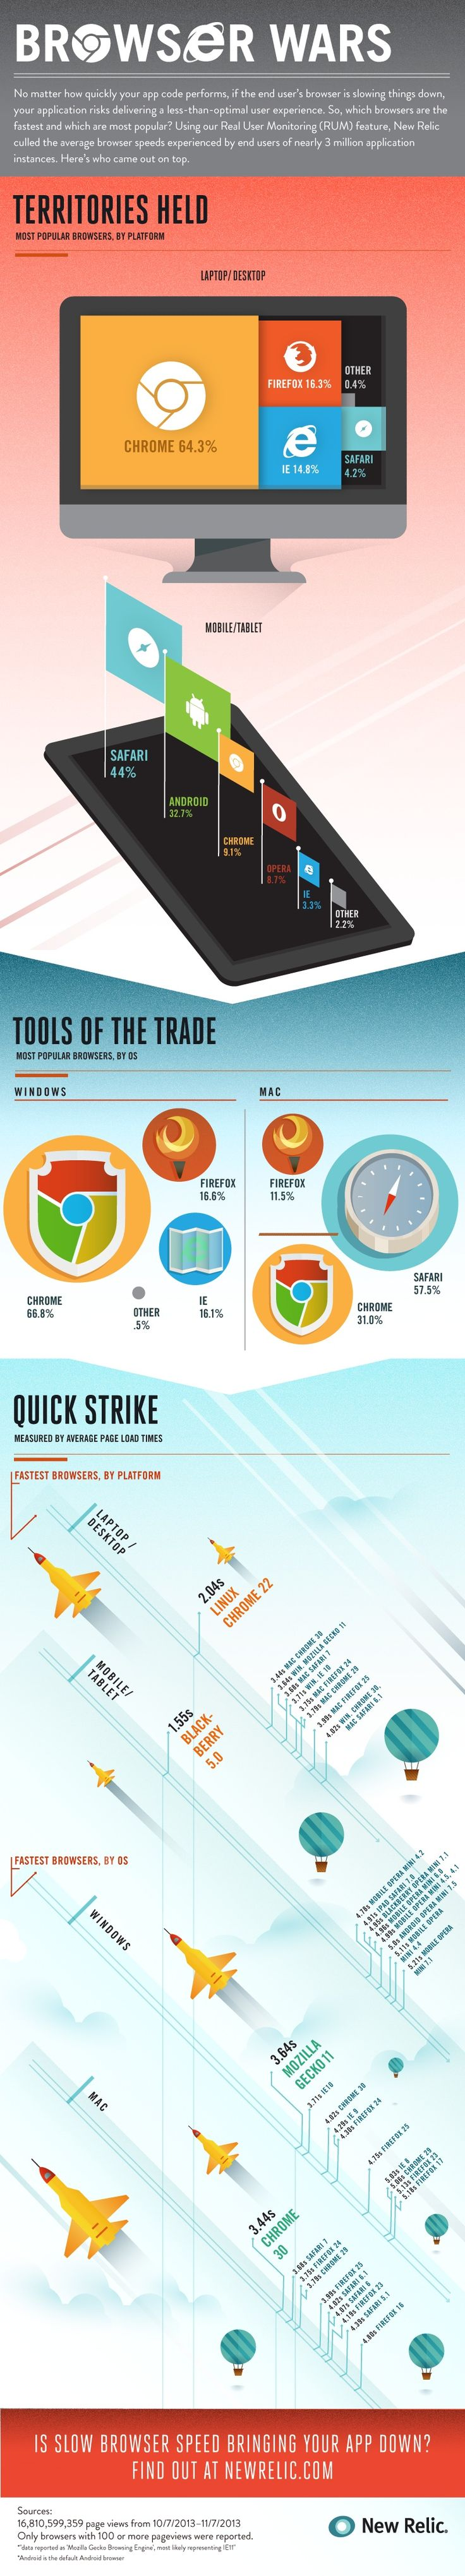 [INFOGRAPHIC] Browser Wars: Find Out Who Dominates This Year